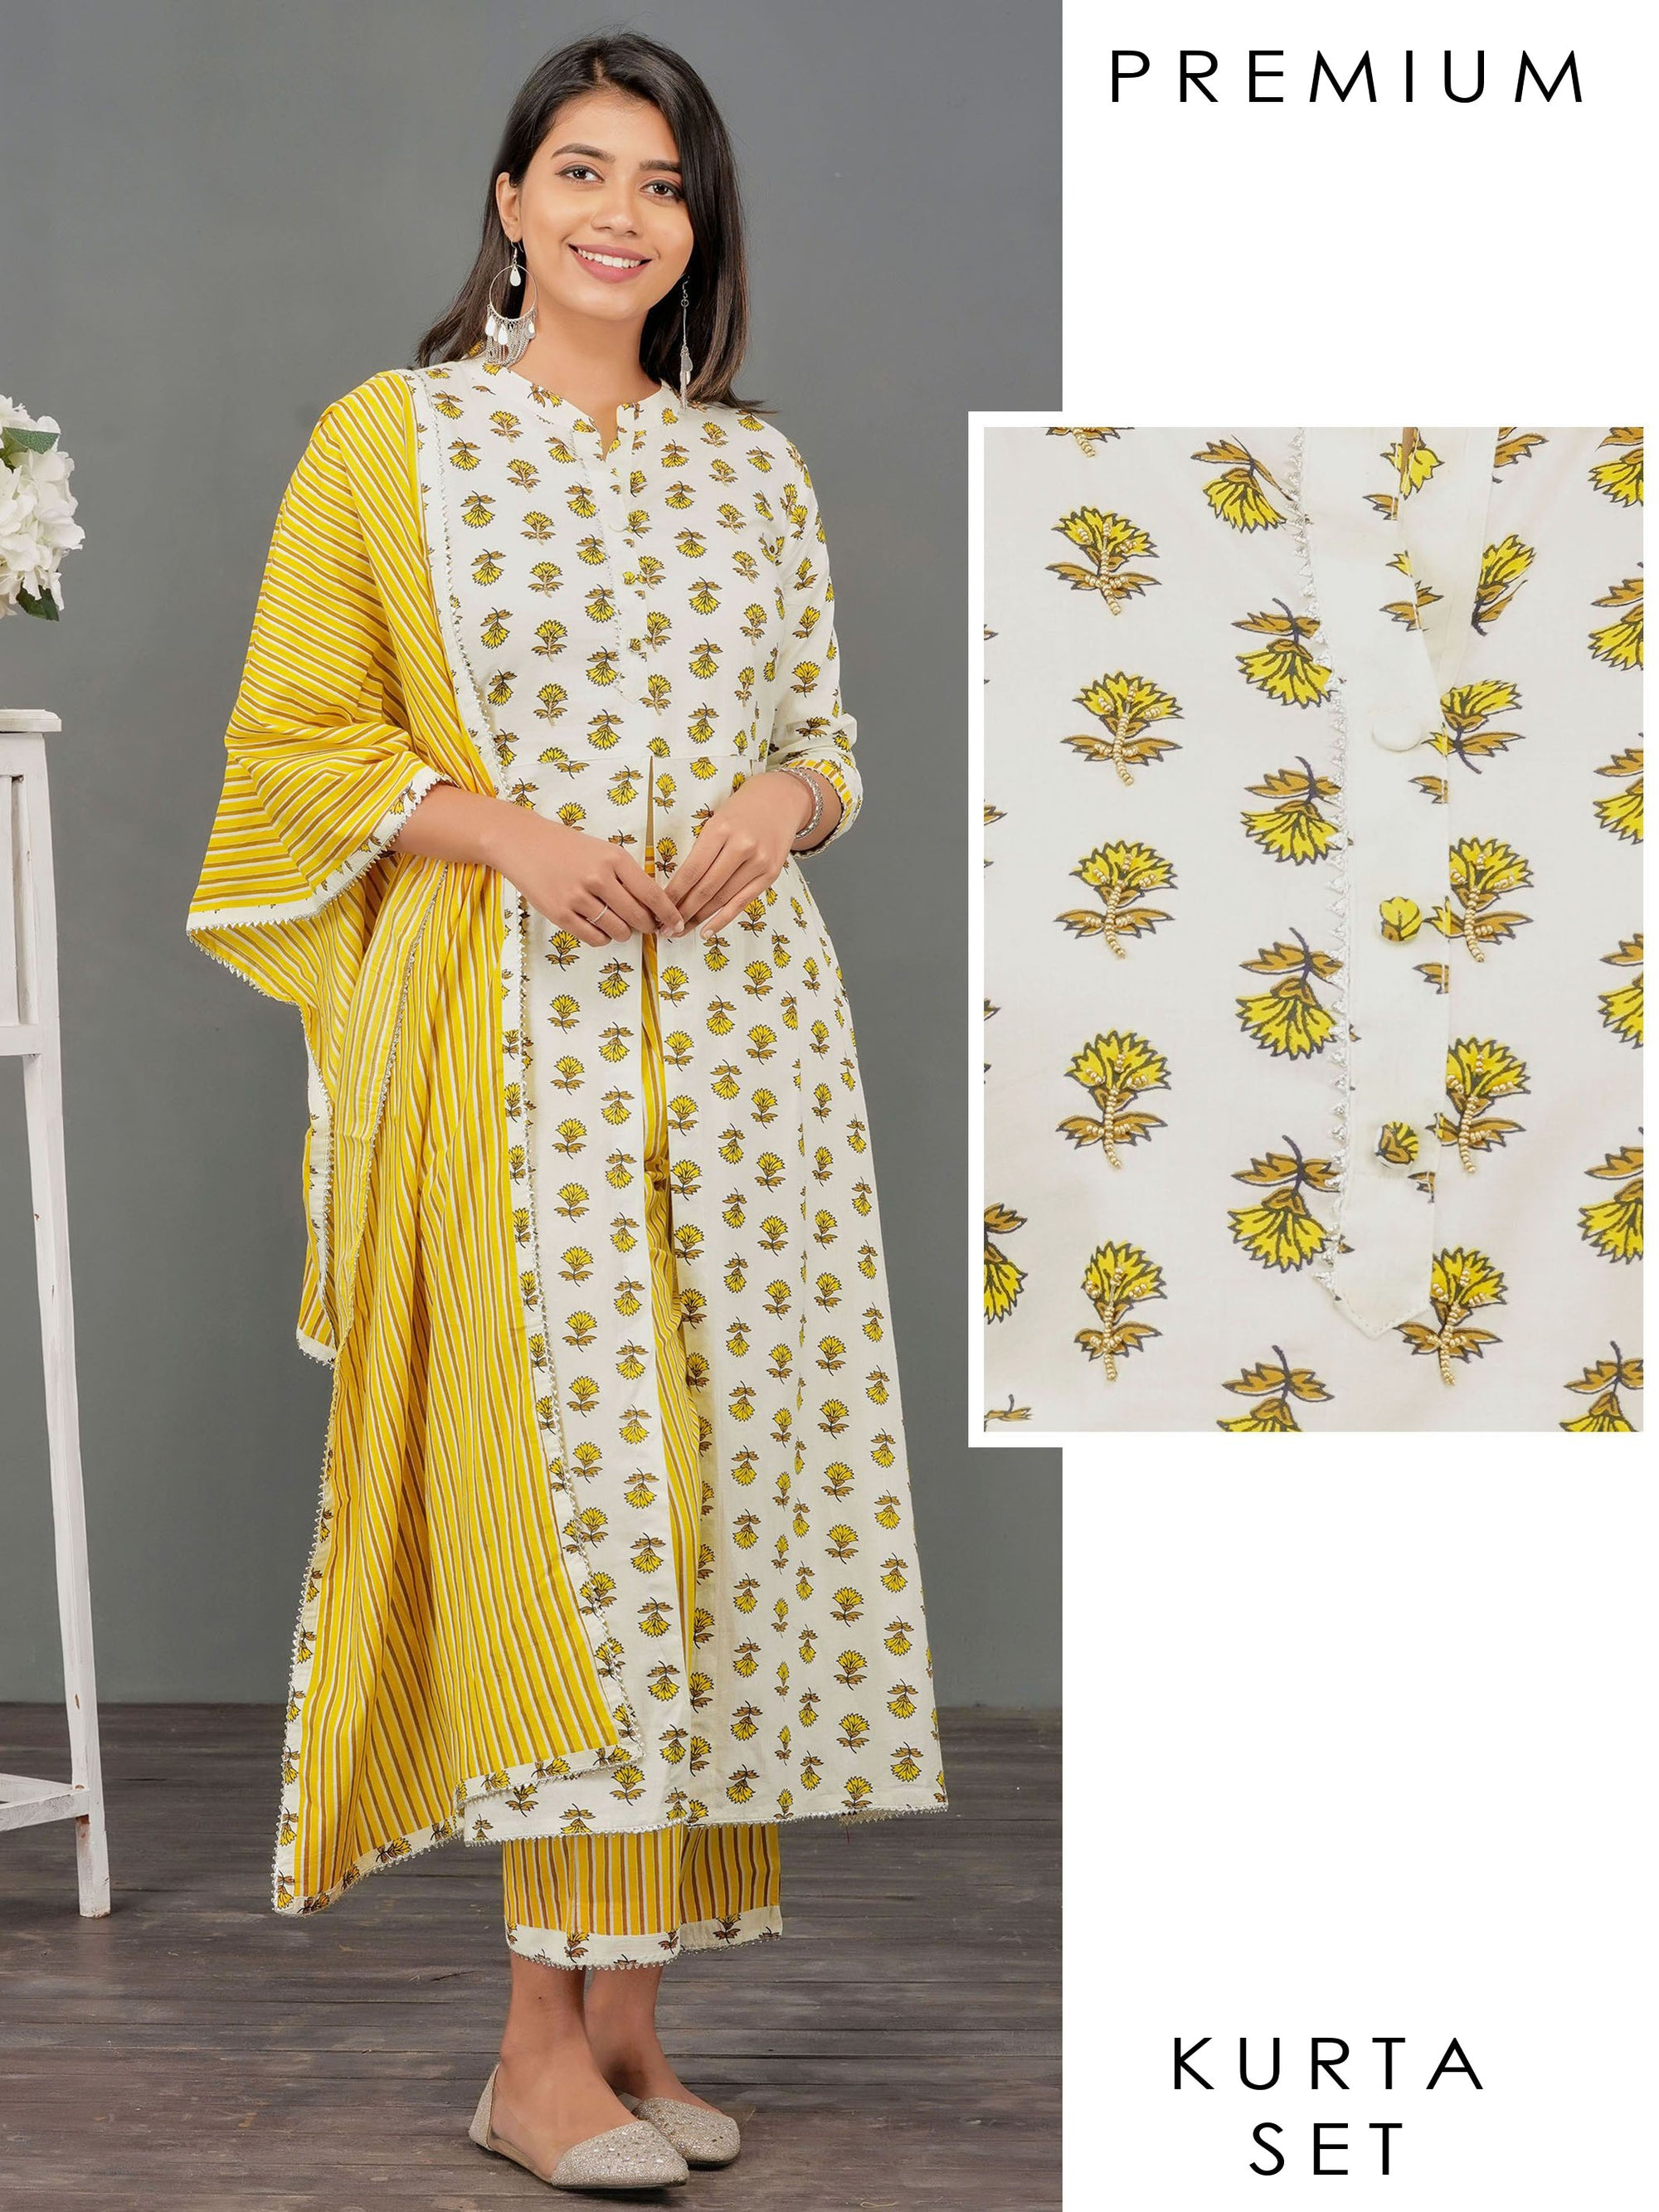 Bead work & Floral Printed Kurti, Vertical Striped Pant & Dupatta Set – Off-White